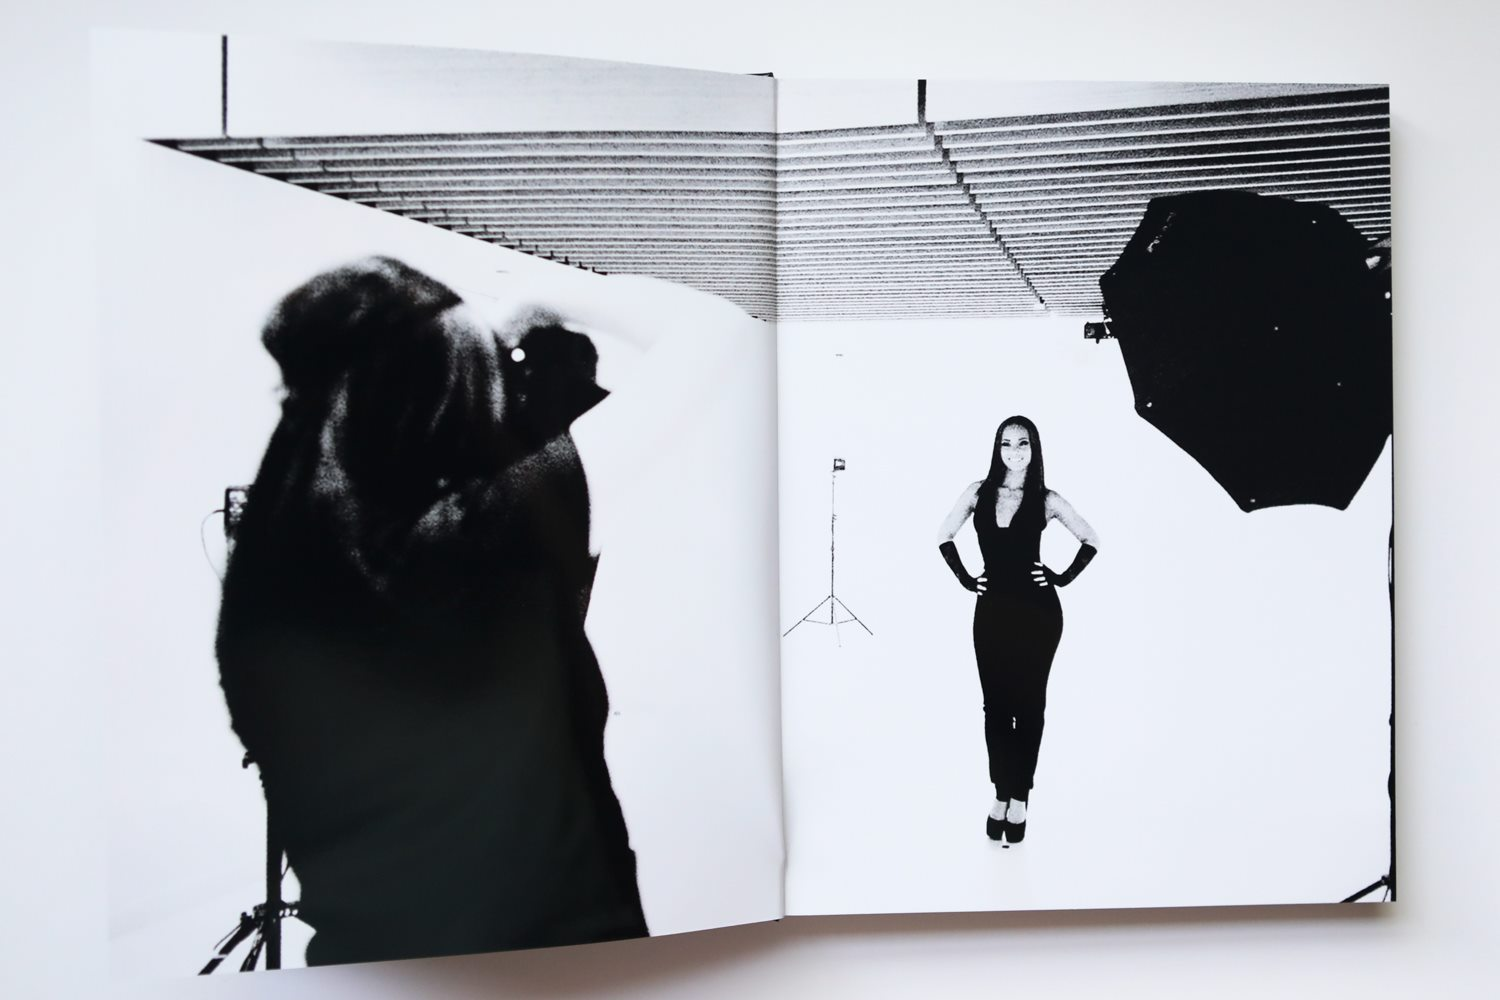 Behind the scenes: Diana Levine photographing Alicia Keys